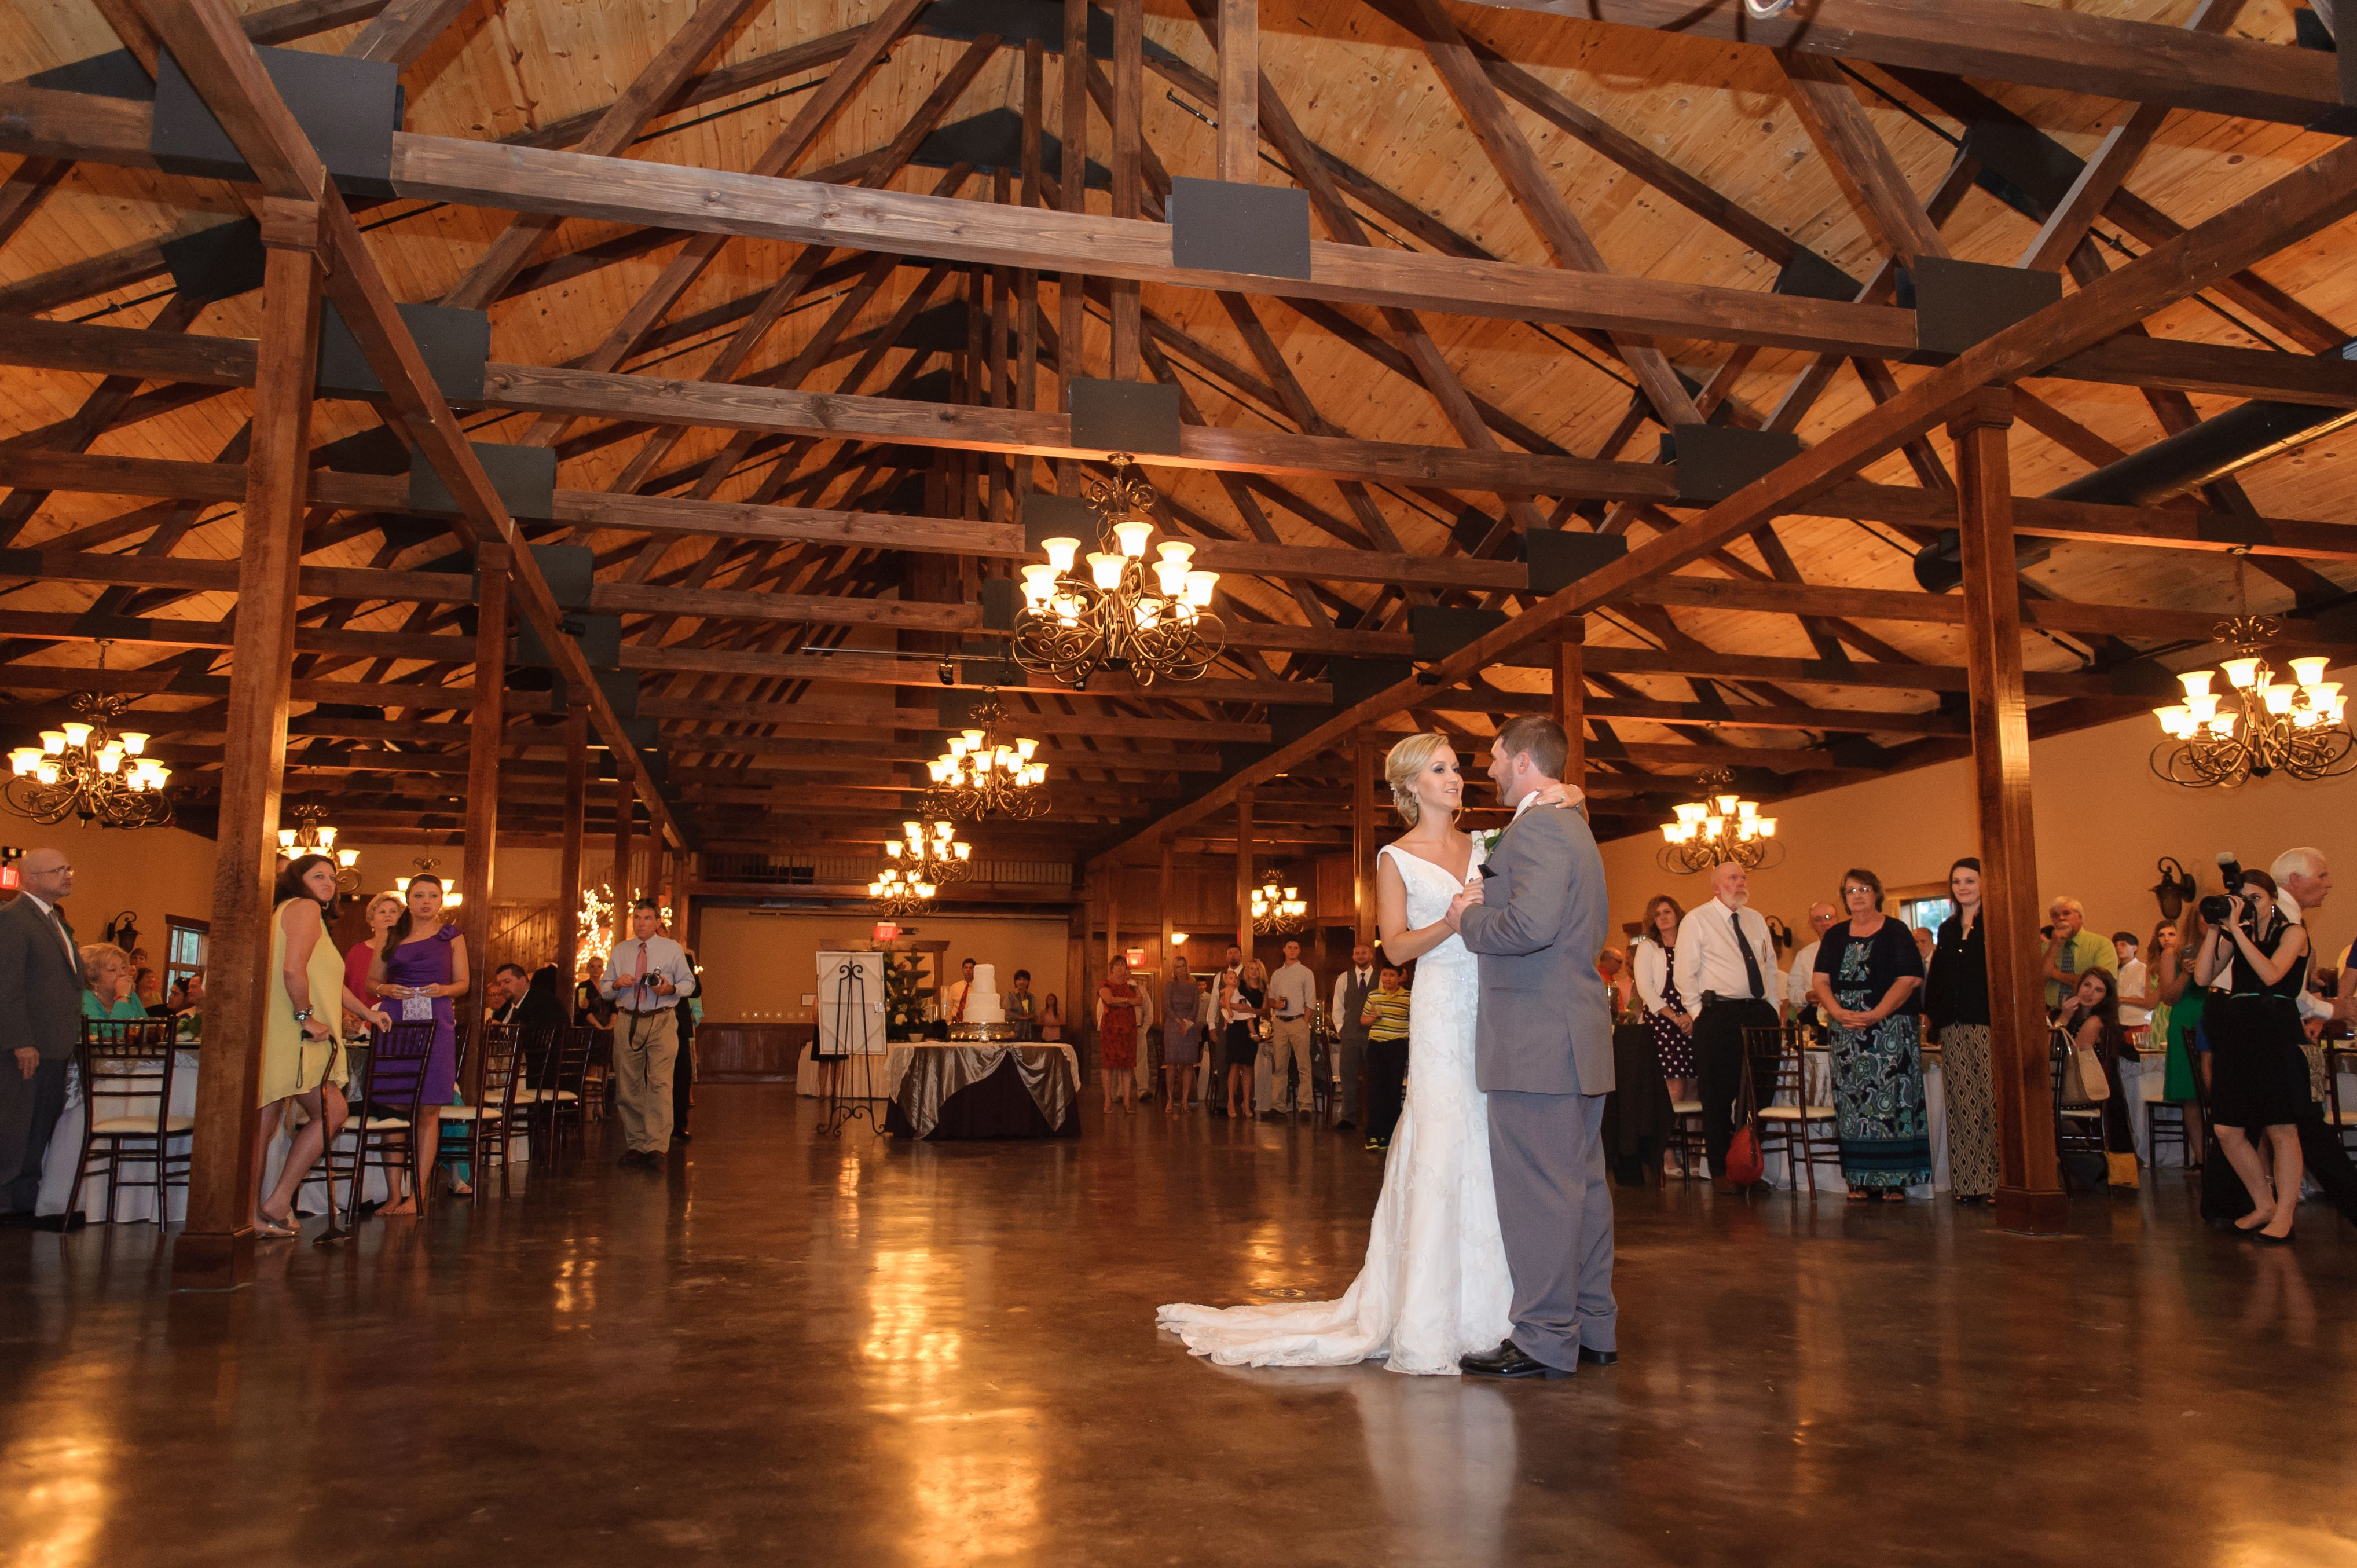 Stone Bridge Farms Wedding Reception First Dance Bride And Groom